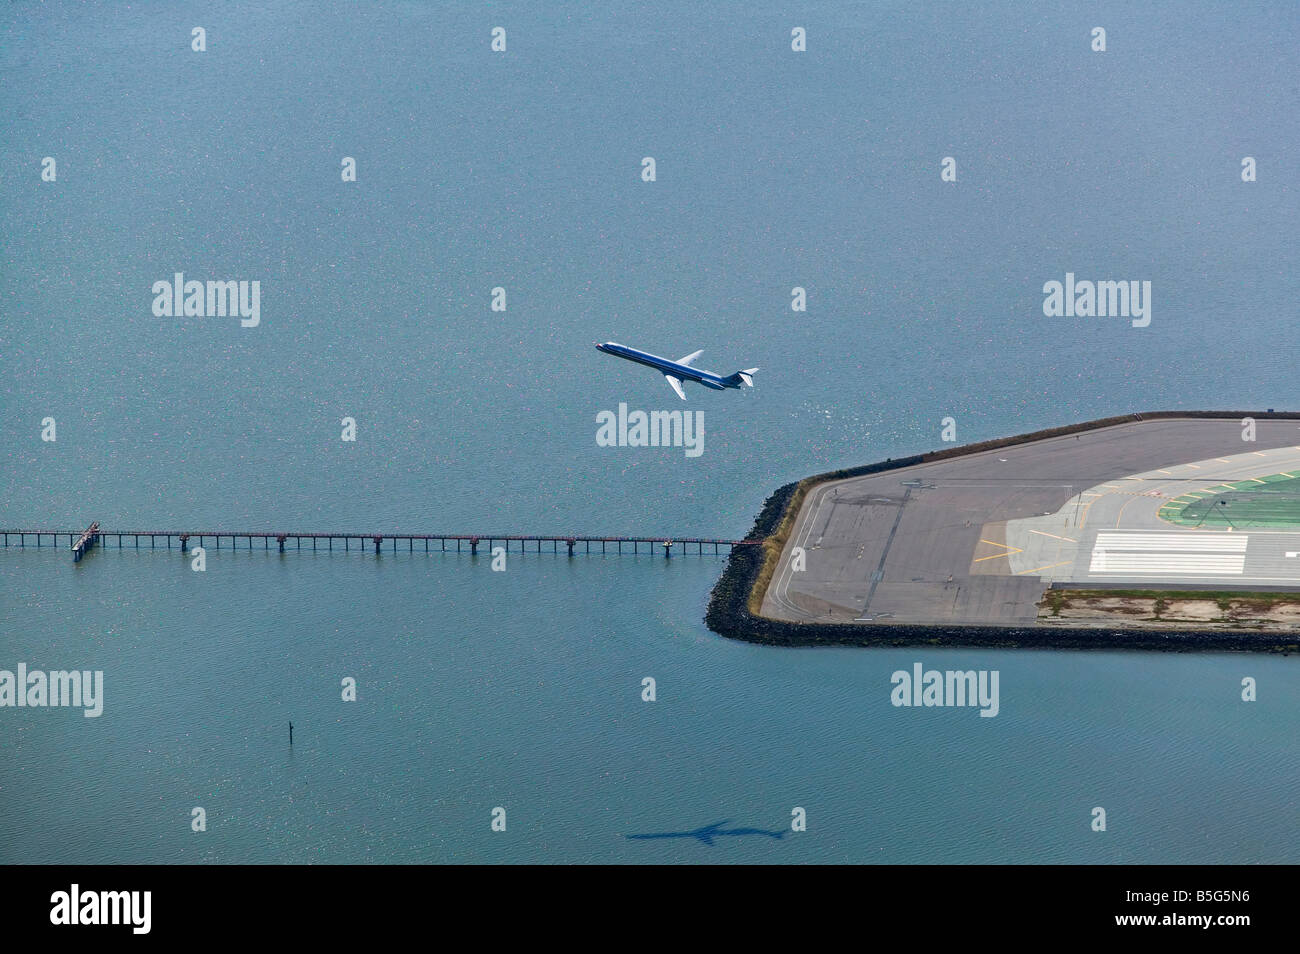 aerial view above passenger jet departing San Francisco international airport over instrument landing system approach - Stock Image